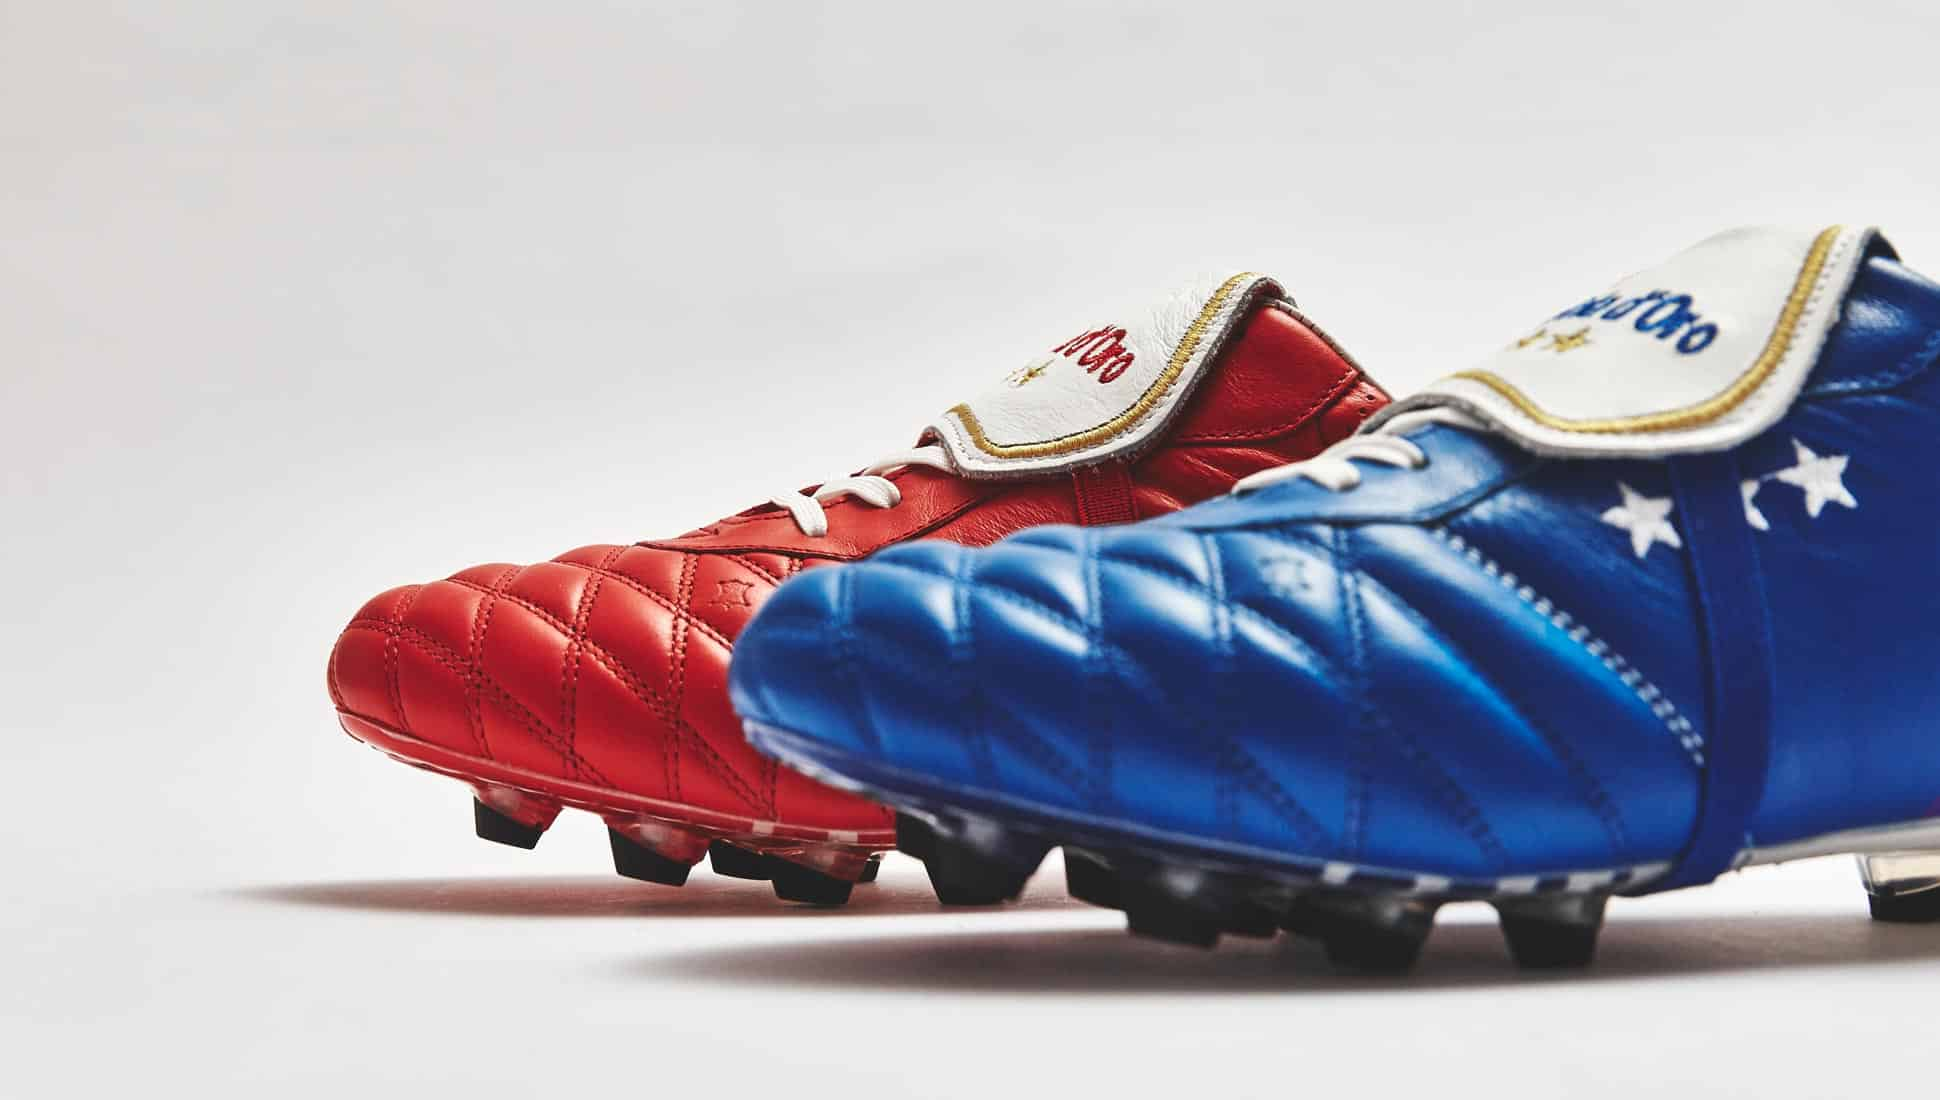 chaussures-football-pantofola-doro-emidio-italia-red-blue-1